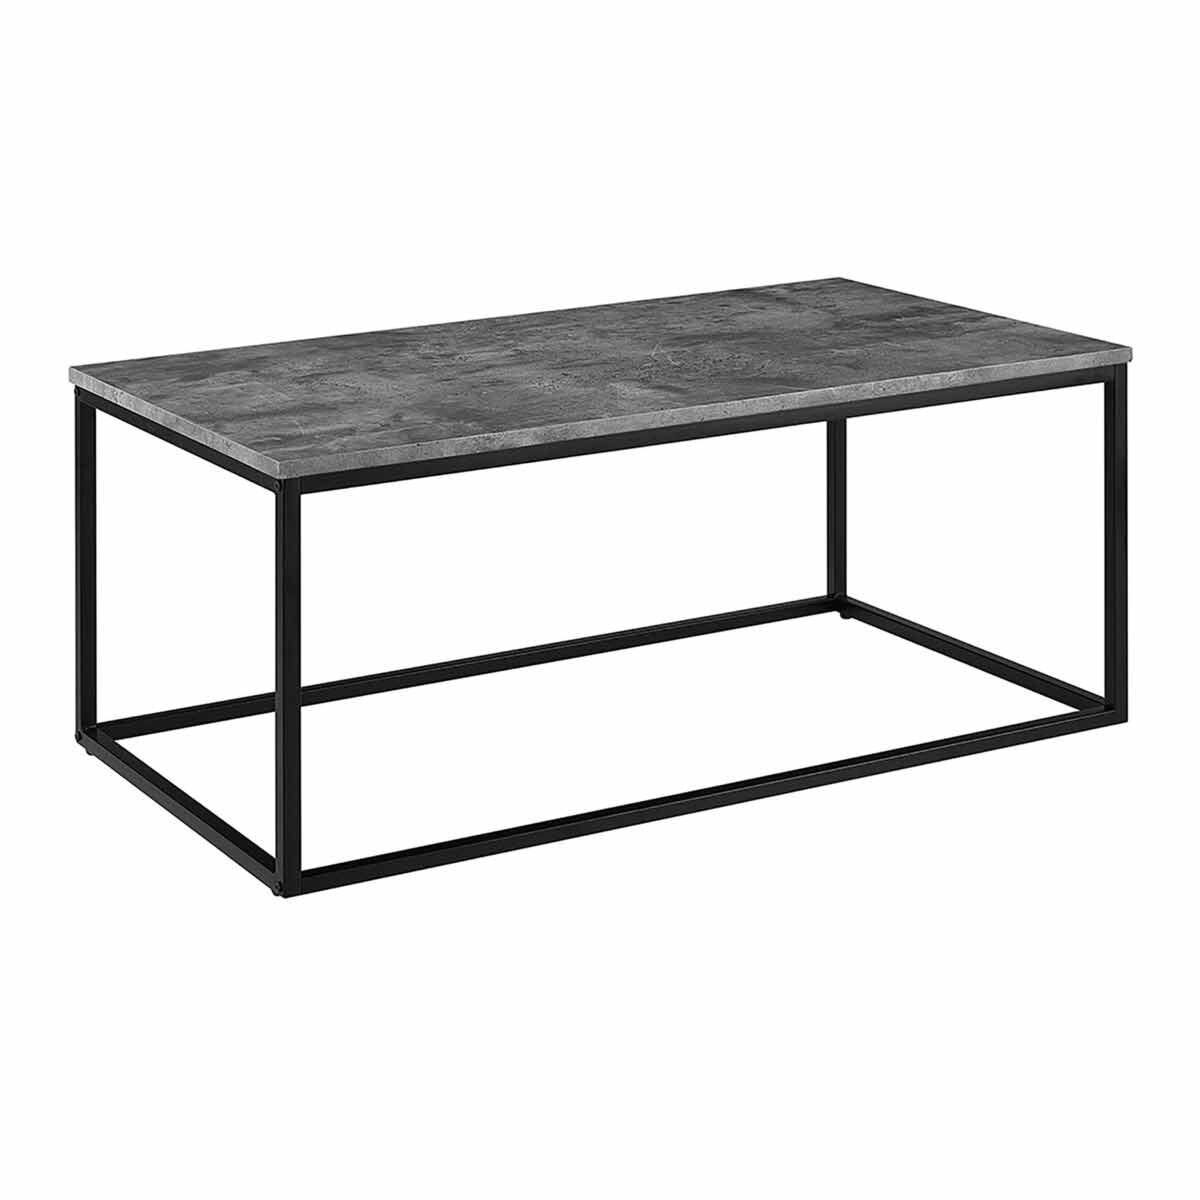 Girona Industrial Coffee Table Grey